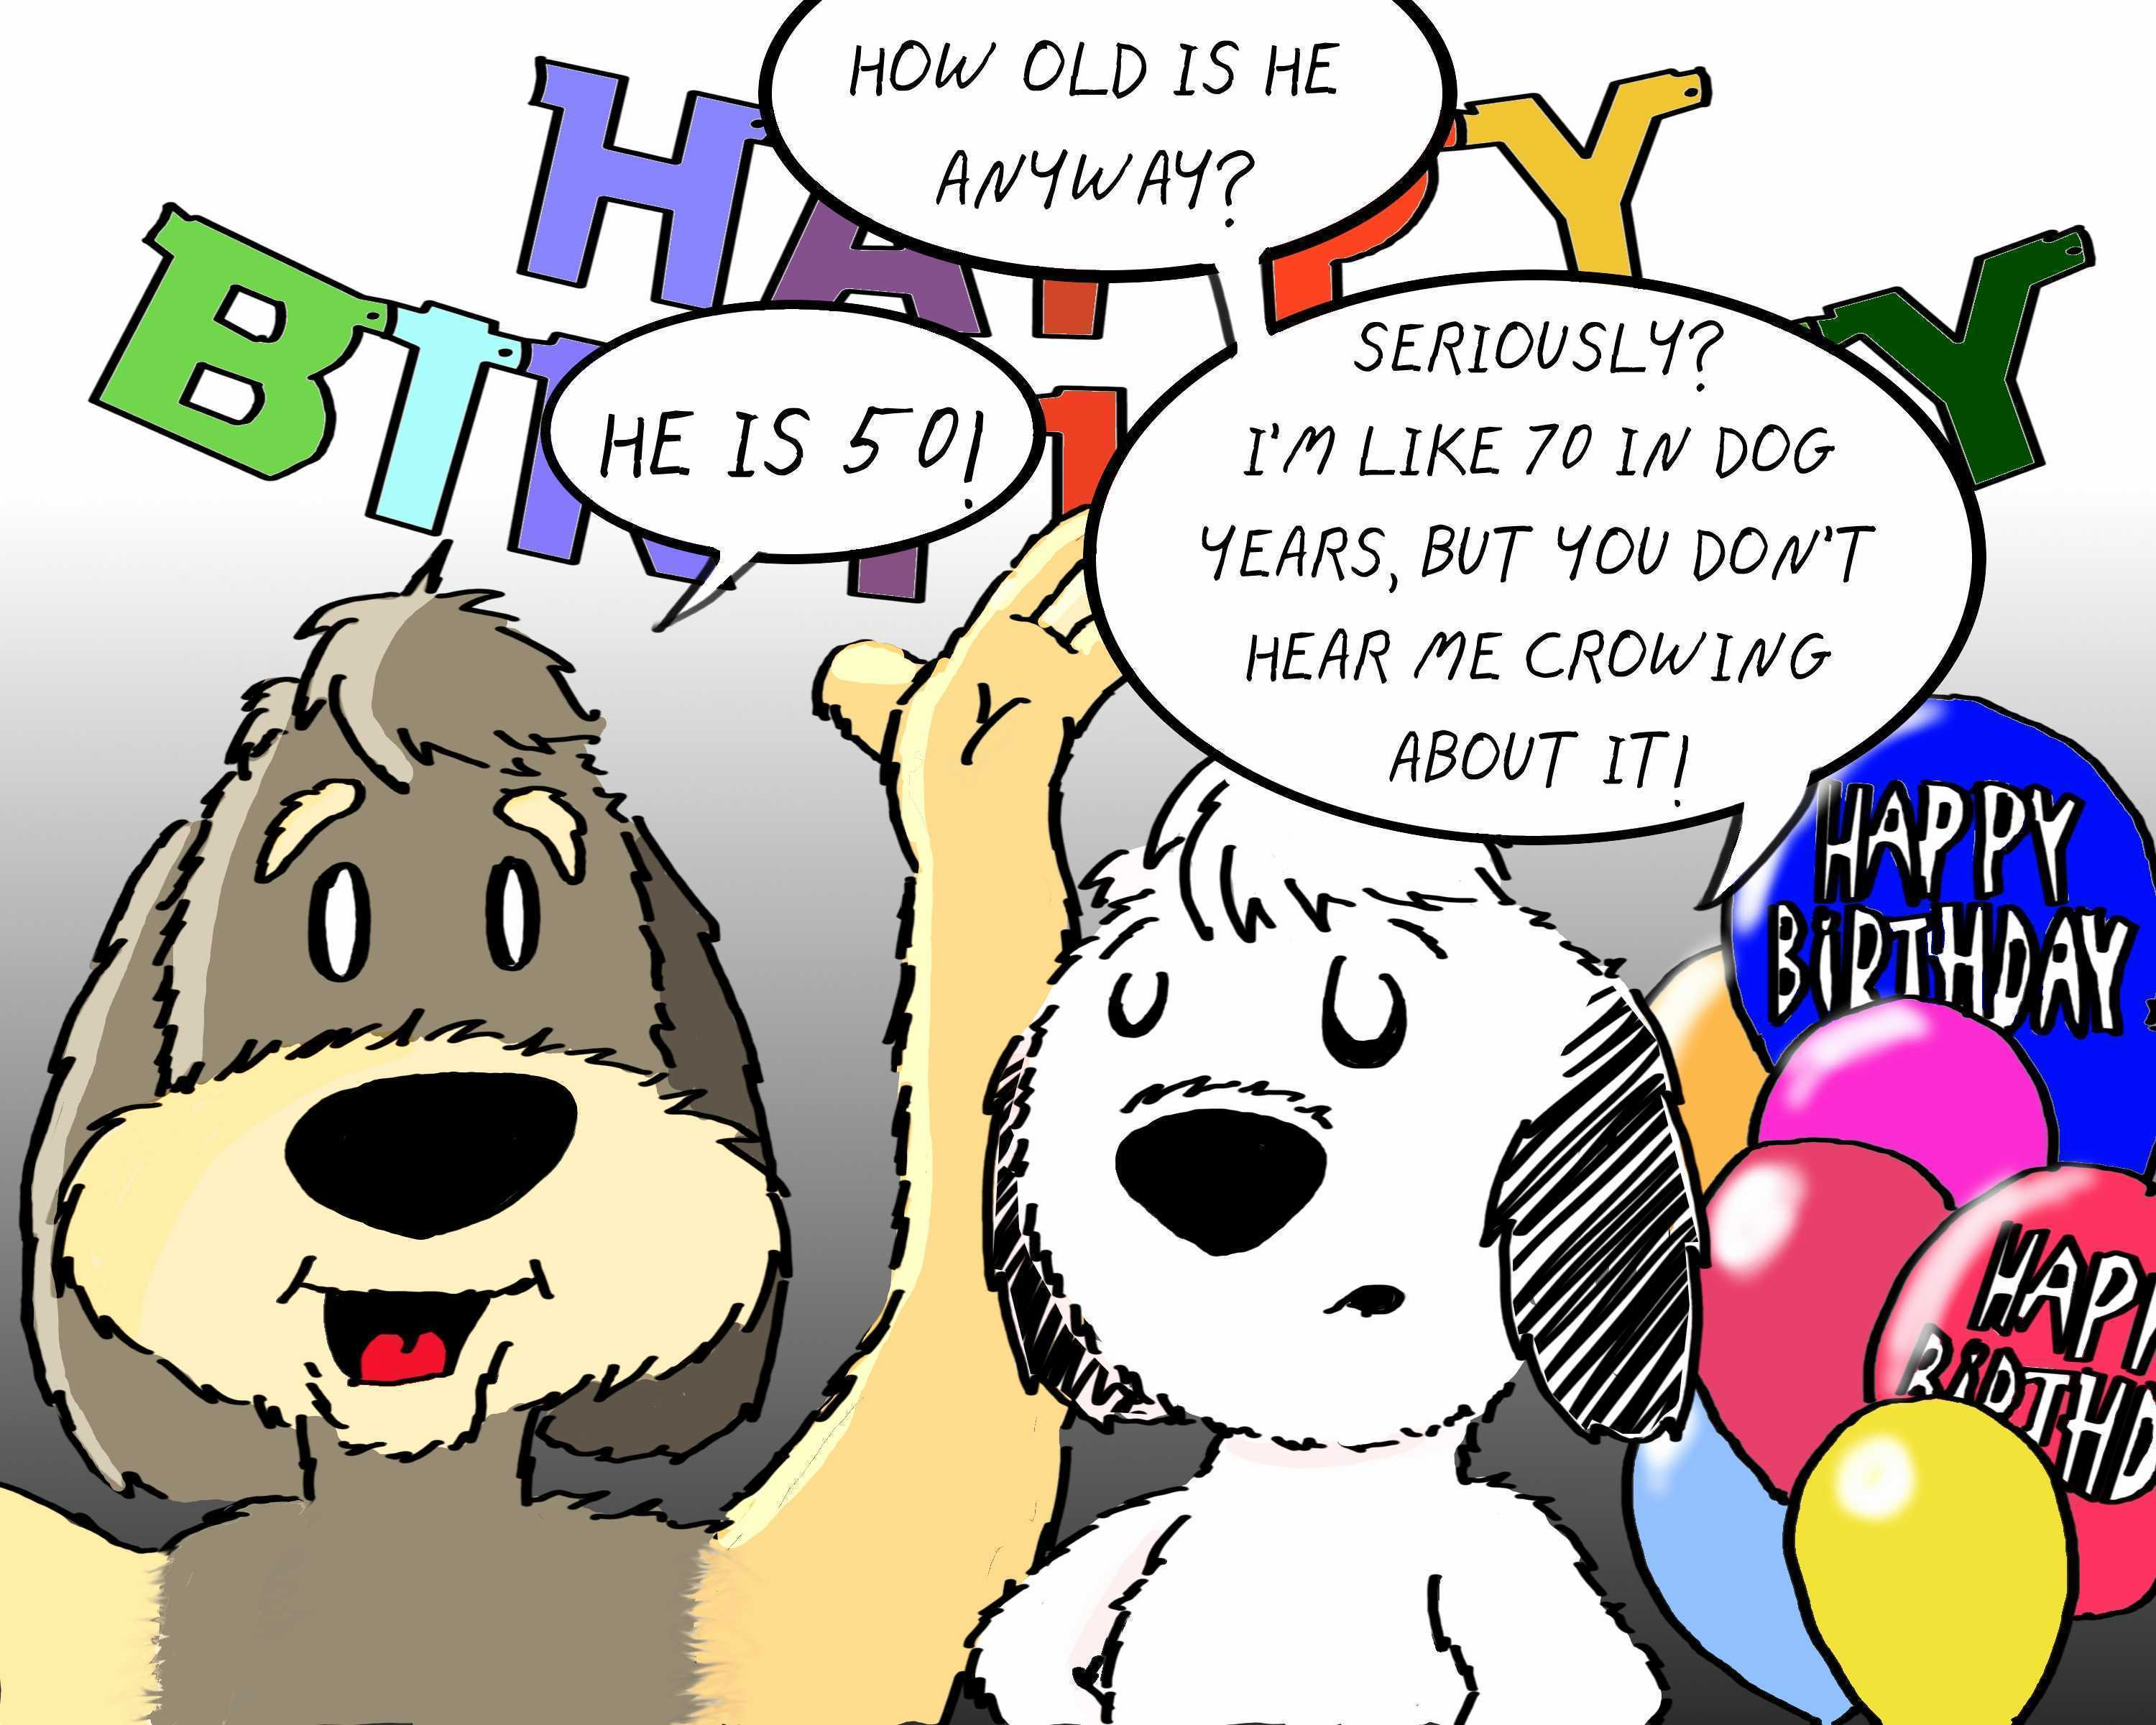 50th birthday pictures clip art ; 50th-happy-birthday-images-unique-happy-50th-birthday-clipart-best-of-50th-happy-birthday-images